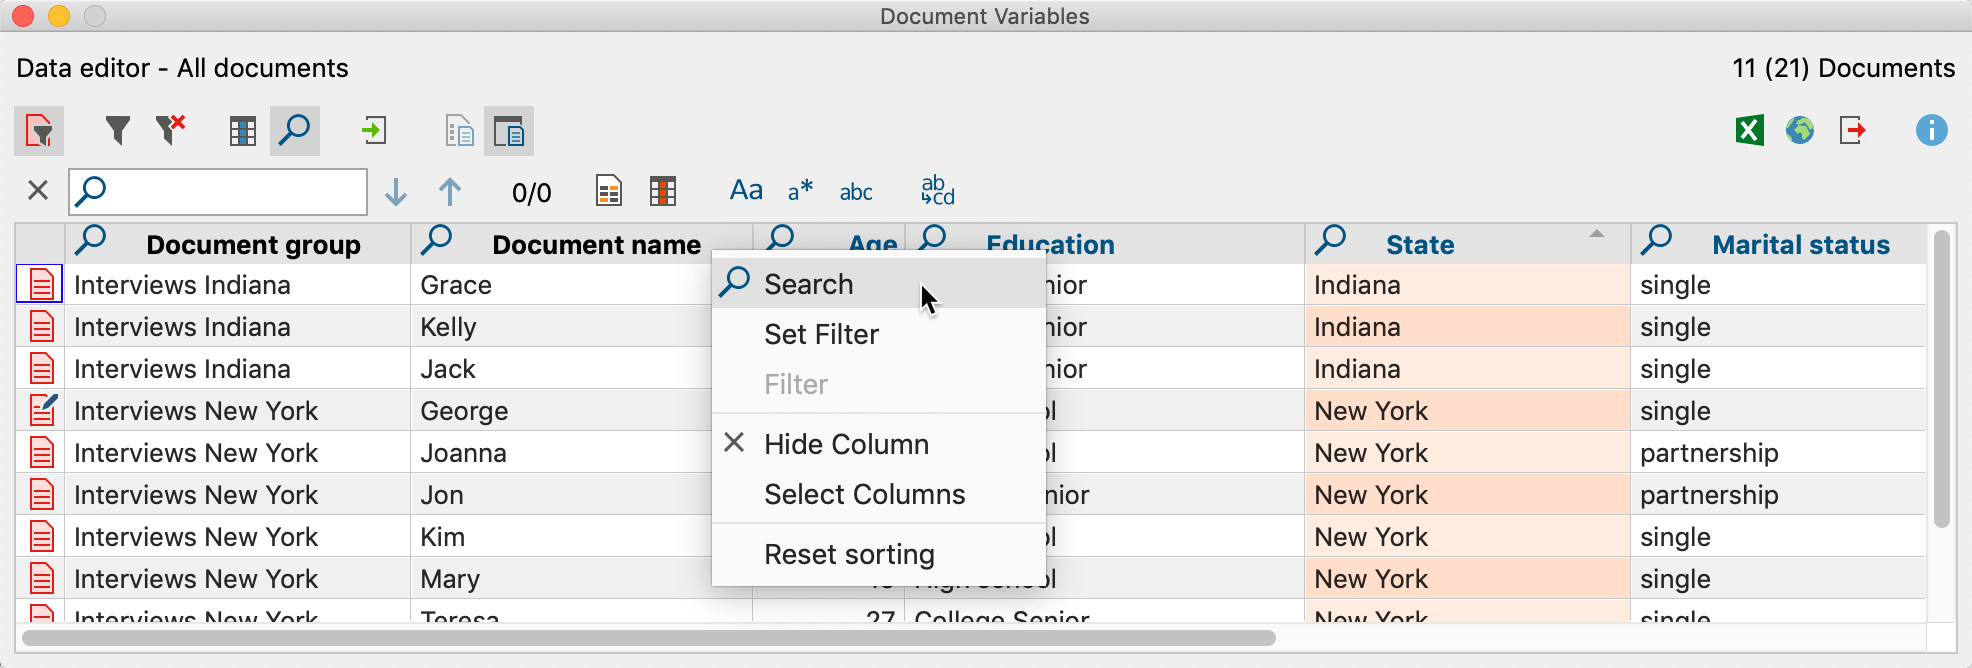 Restrict search to one column